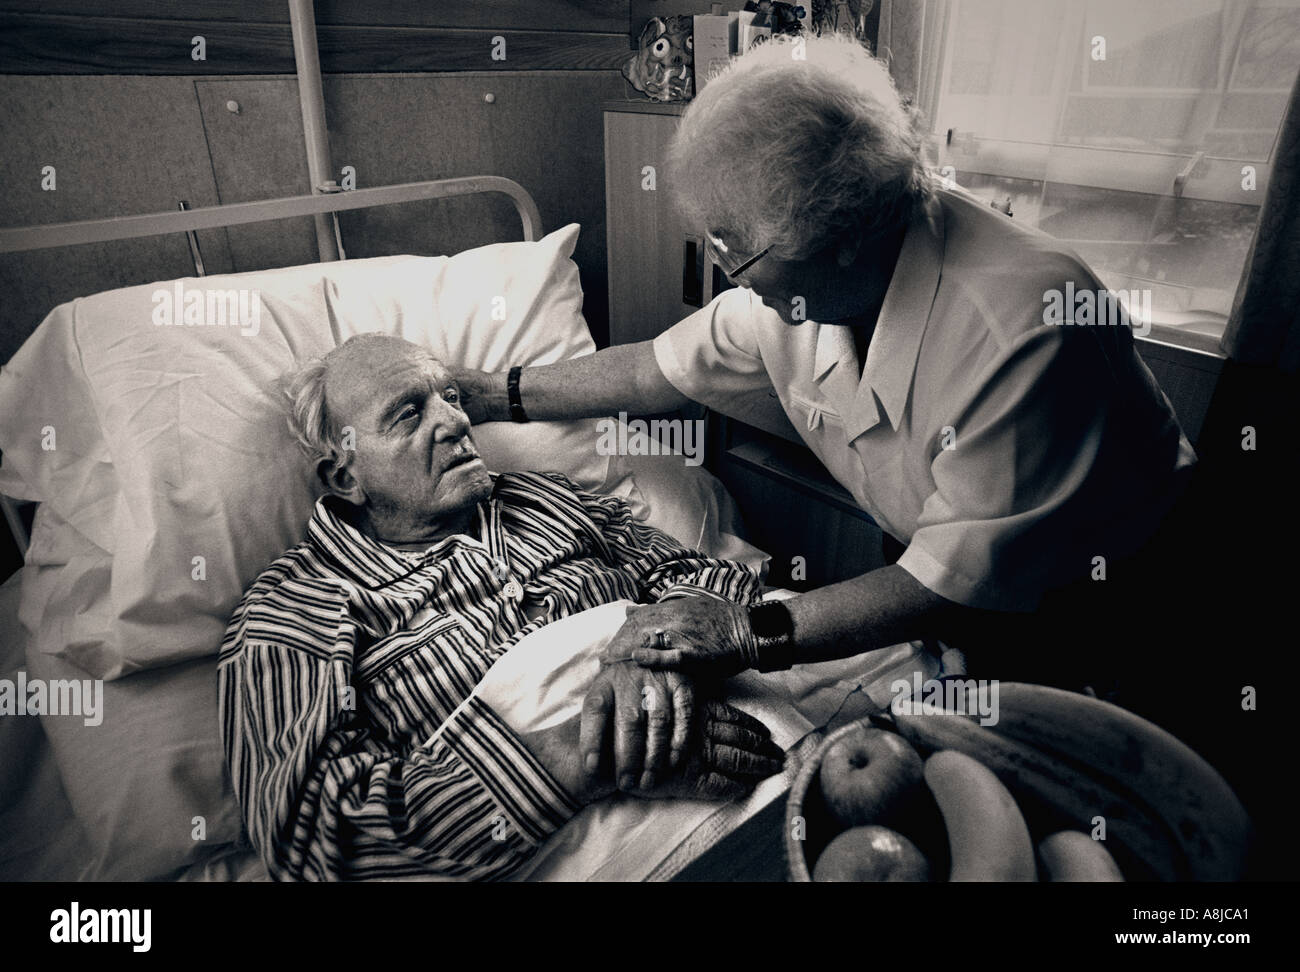 Visiting carer wife companion comforts elderly gentleman in his care home bed Black and White toned treatment - Stock Image